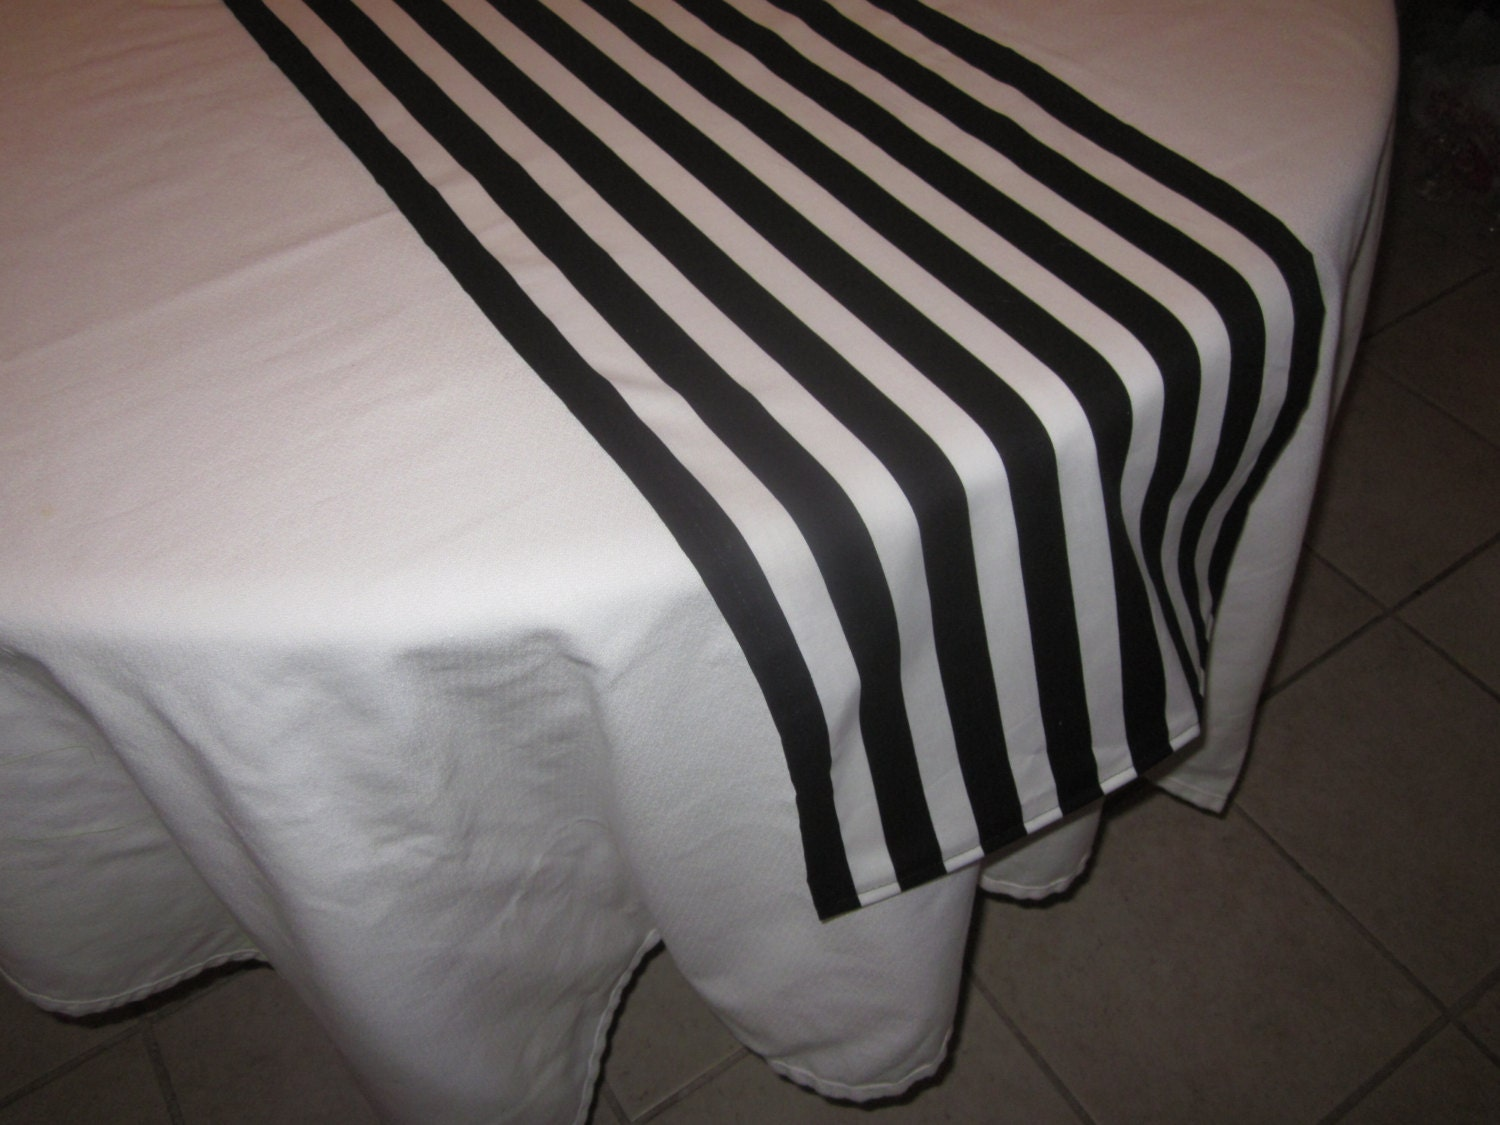 Black and White Stripe Table Runner Halloween by DelightfulSewNSew